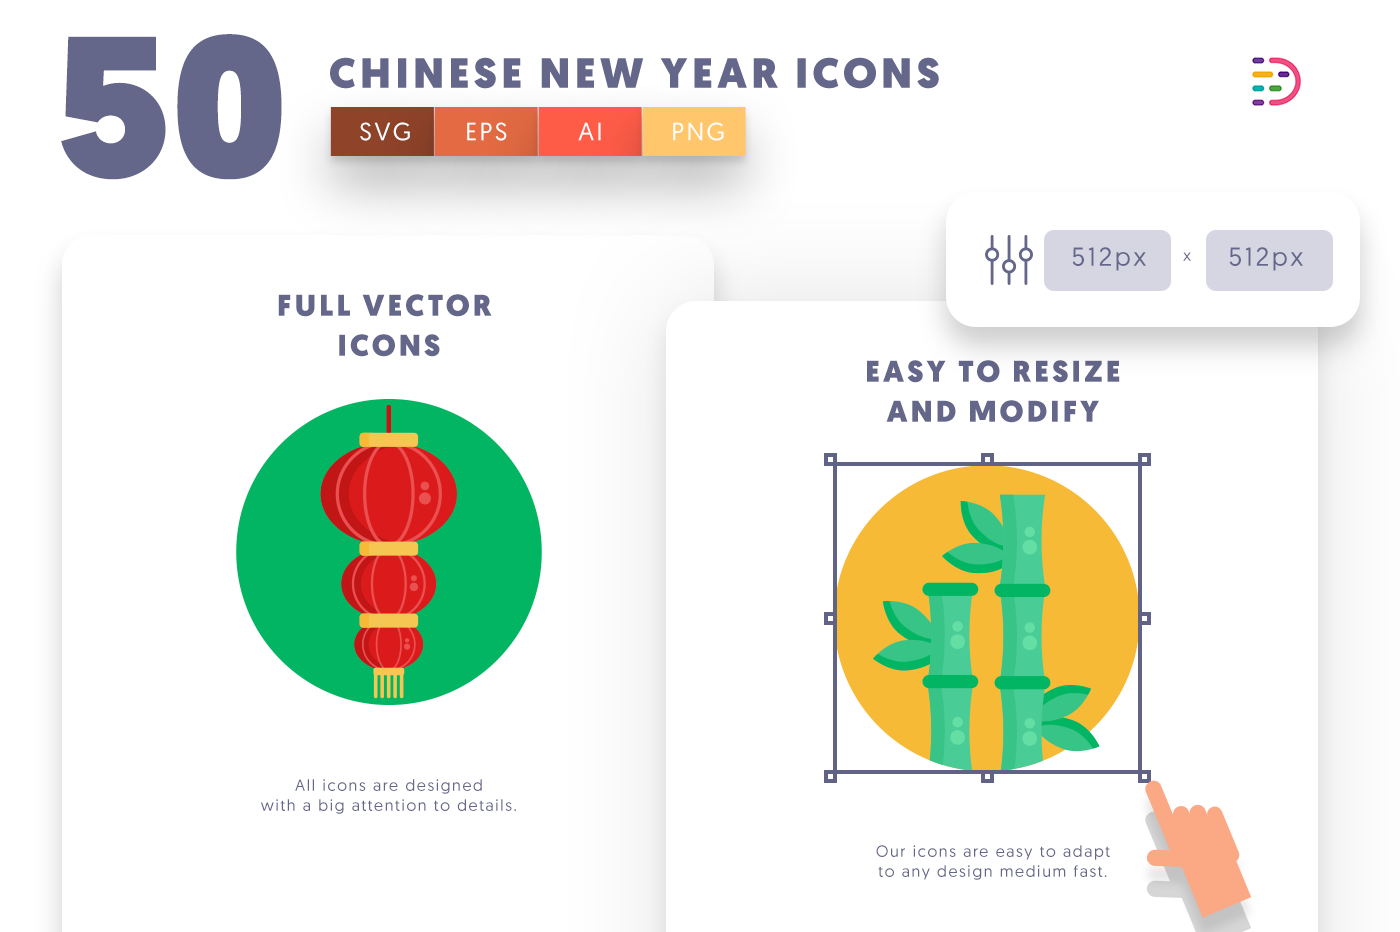 Full vector 50ChineseNewYear Icons